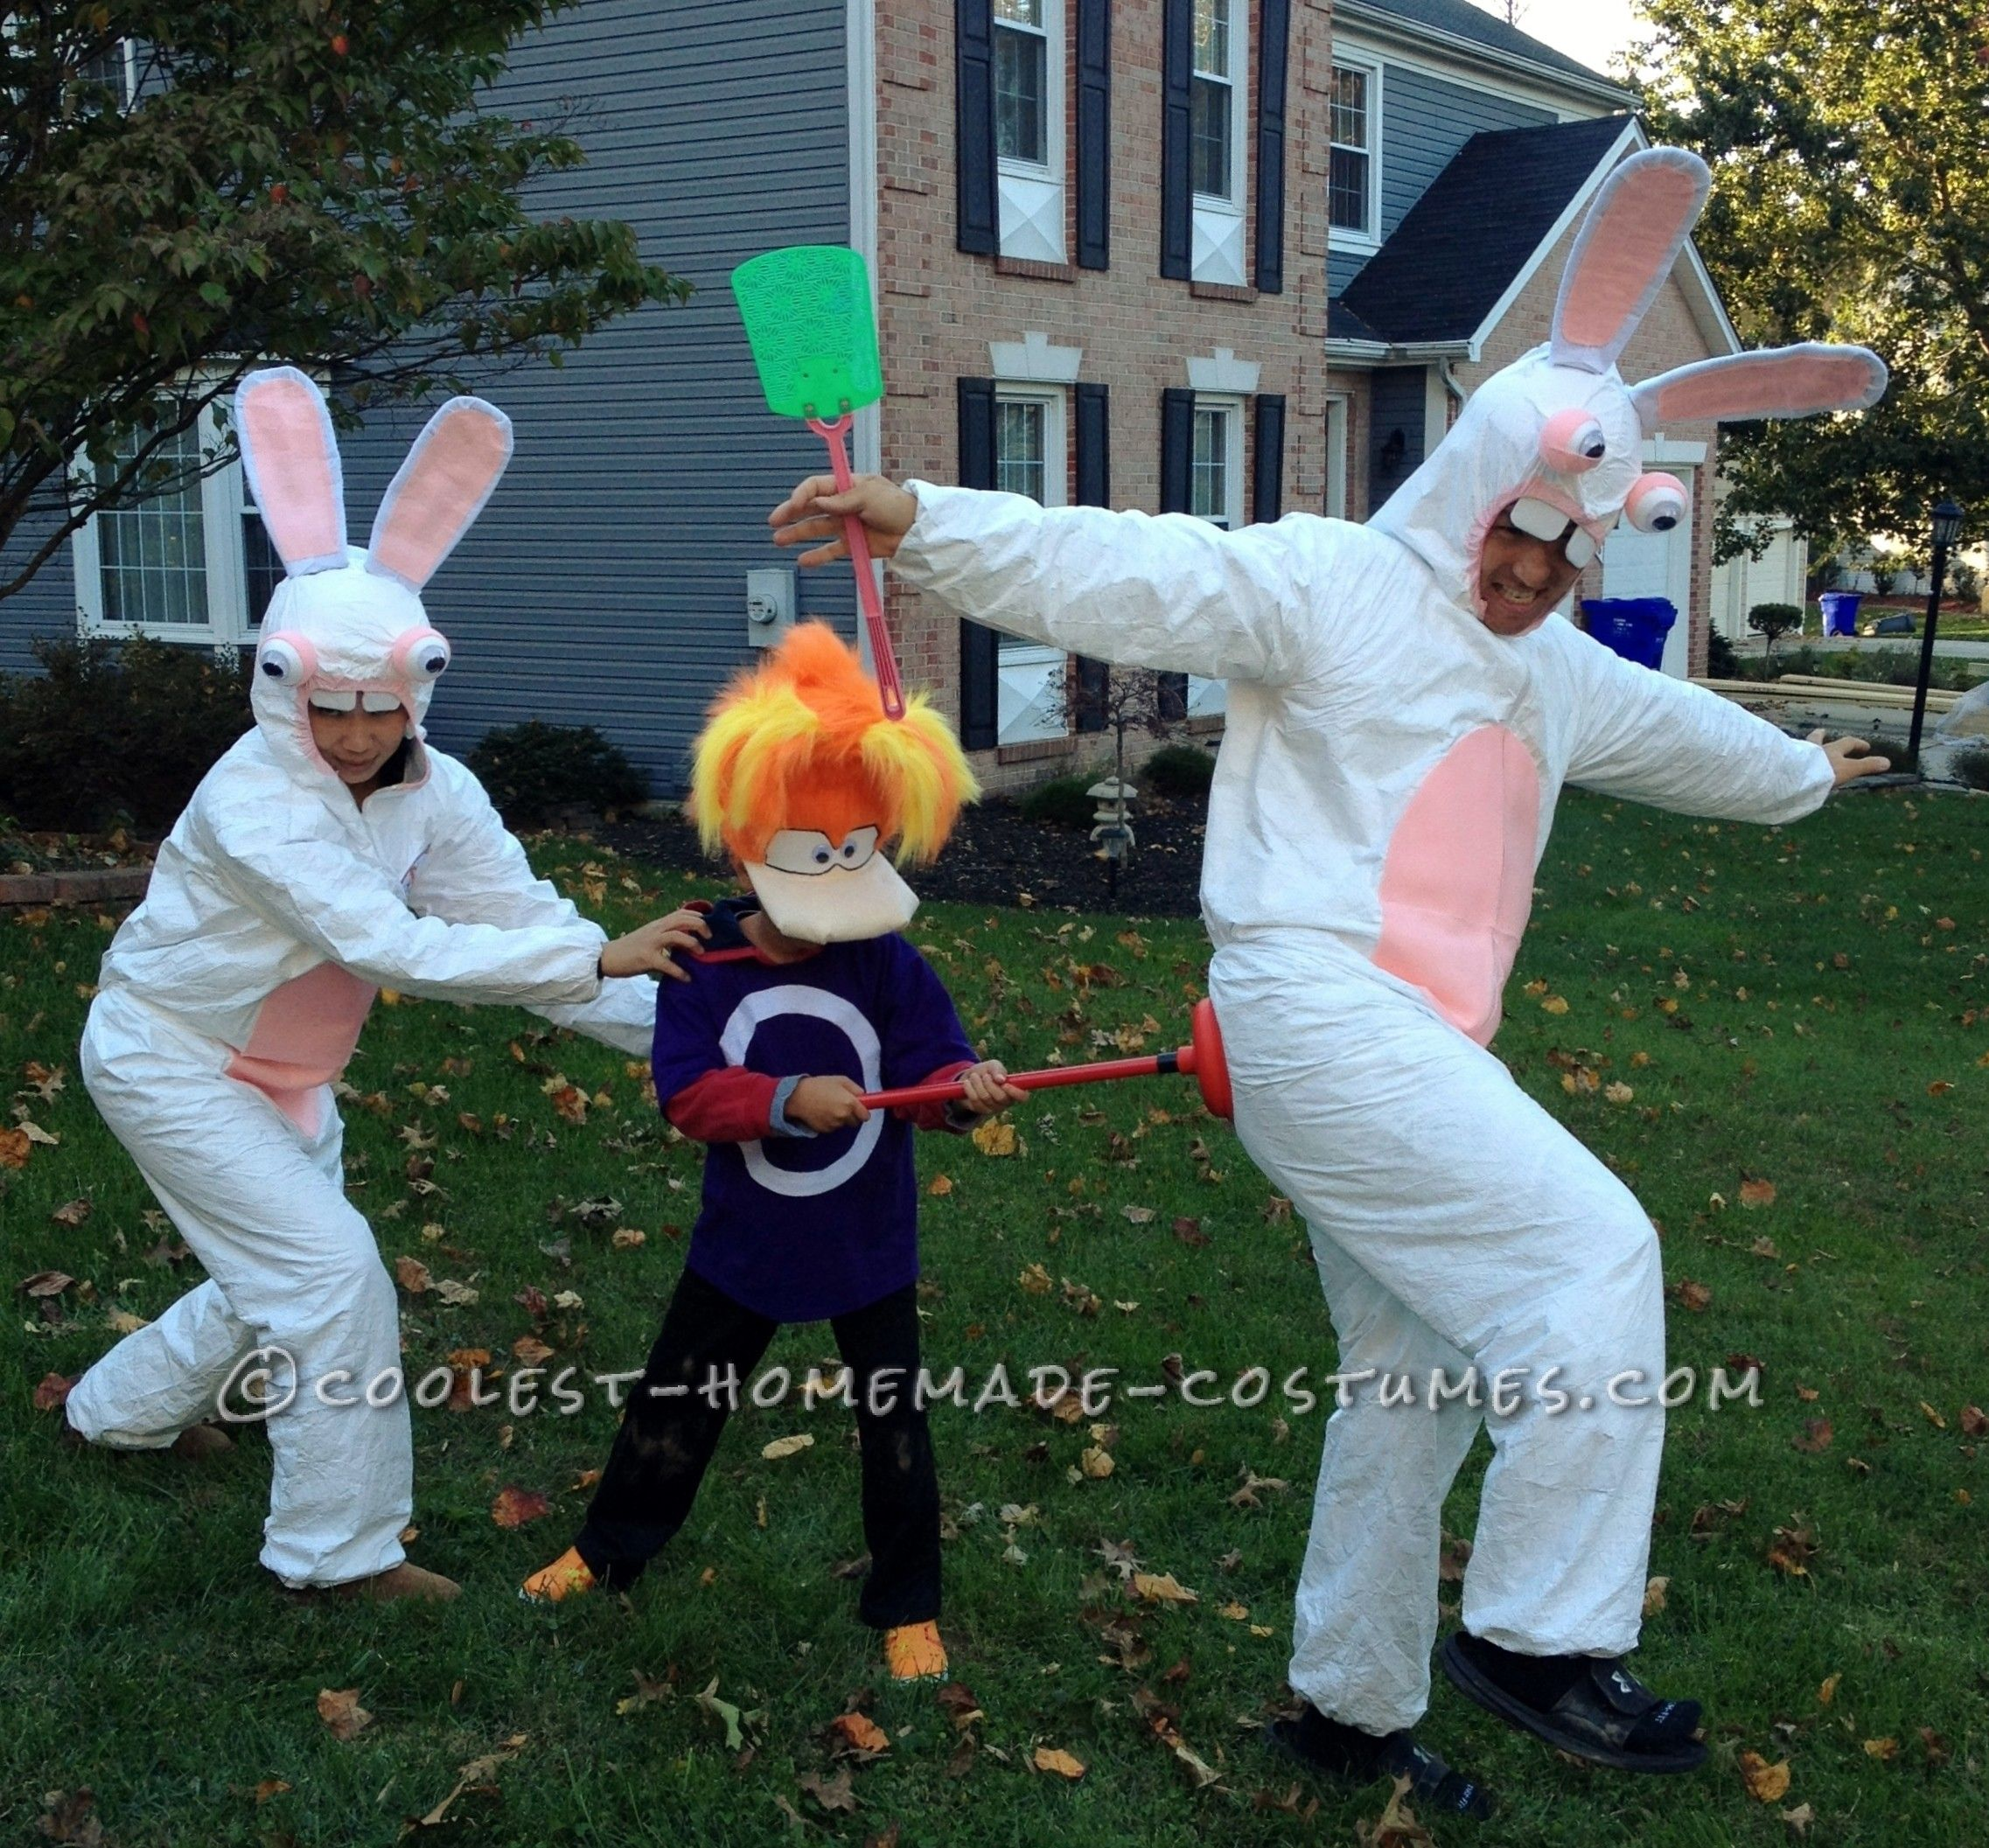 rabbids halloween raving rabbids halloween costume rabbids pinterest halloween rave - Raving Rabbids Halloween Costume